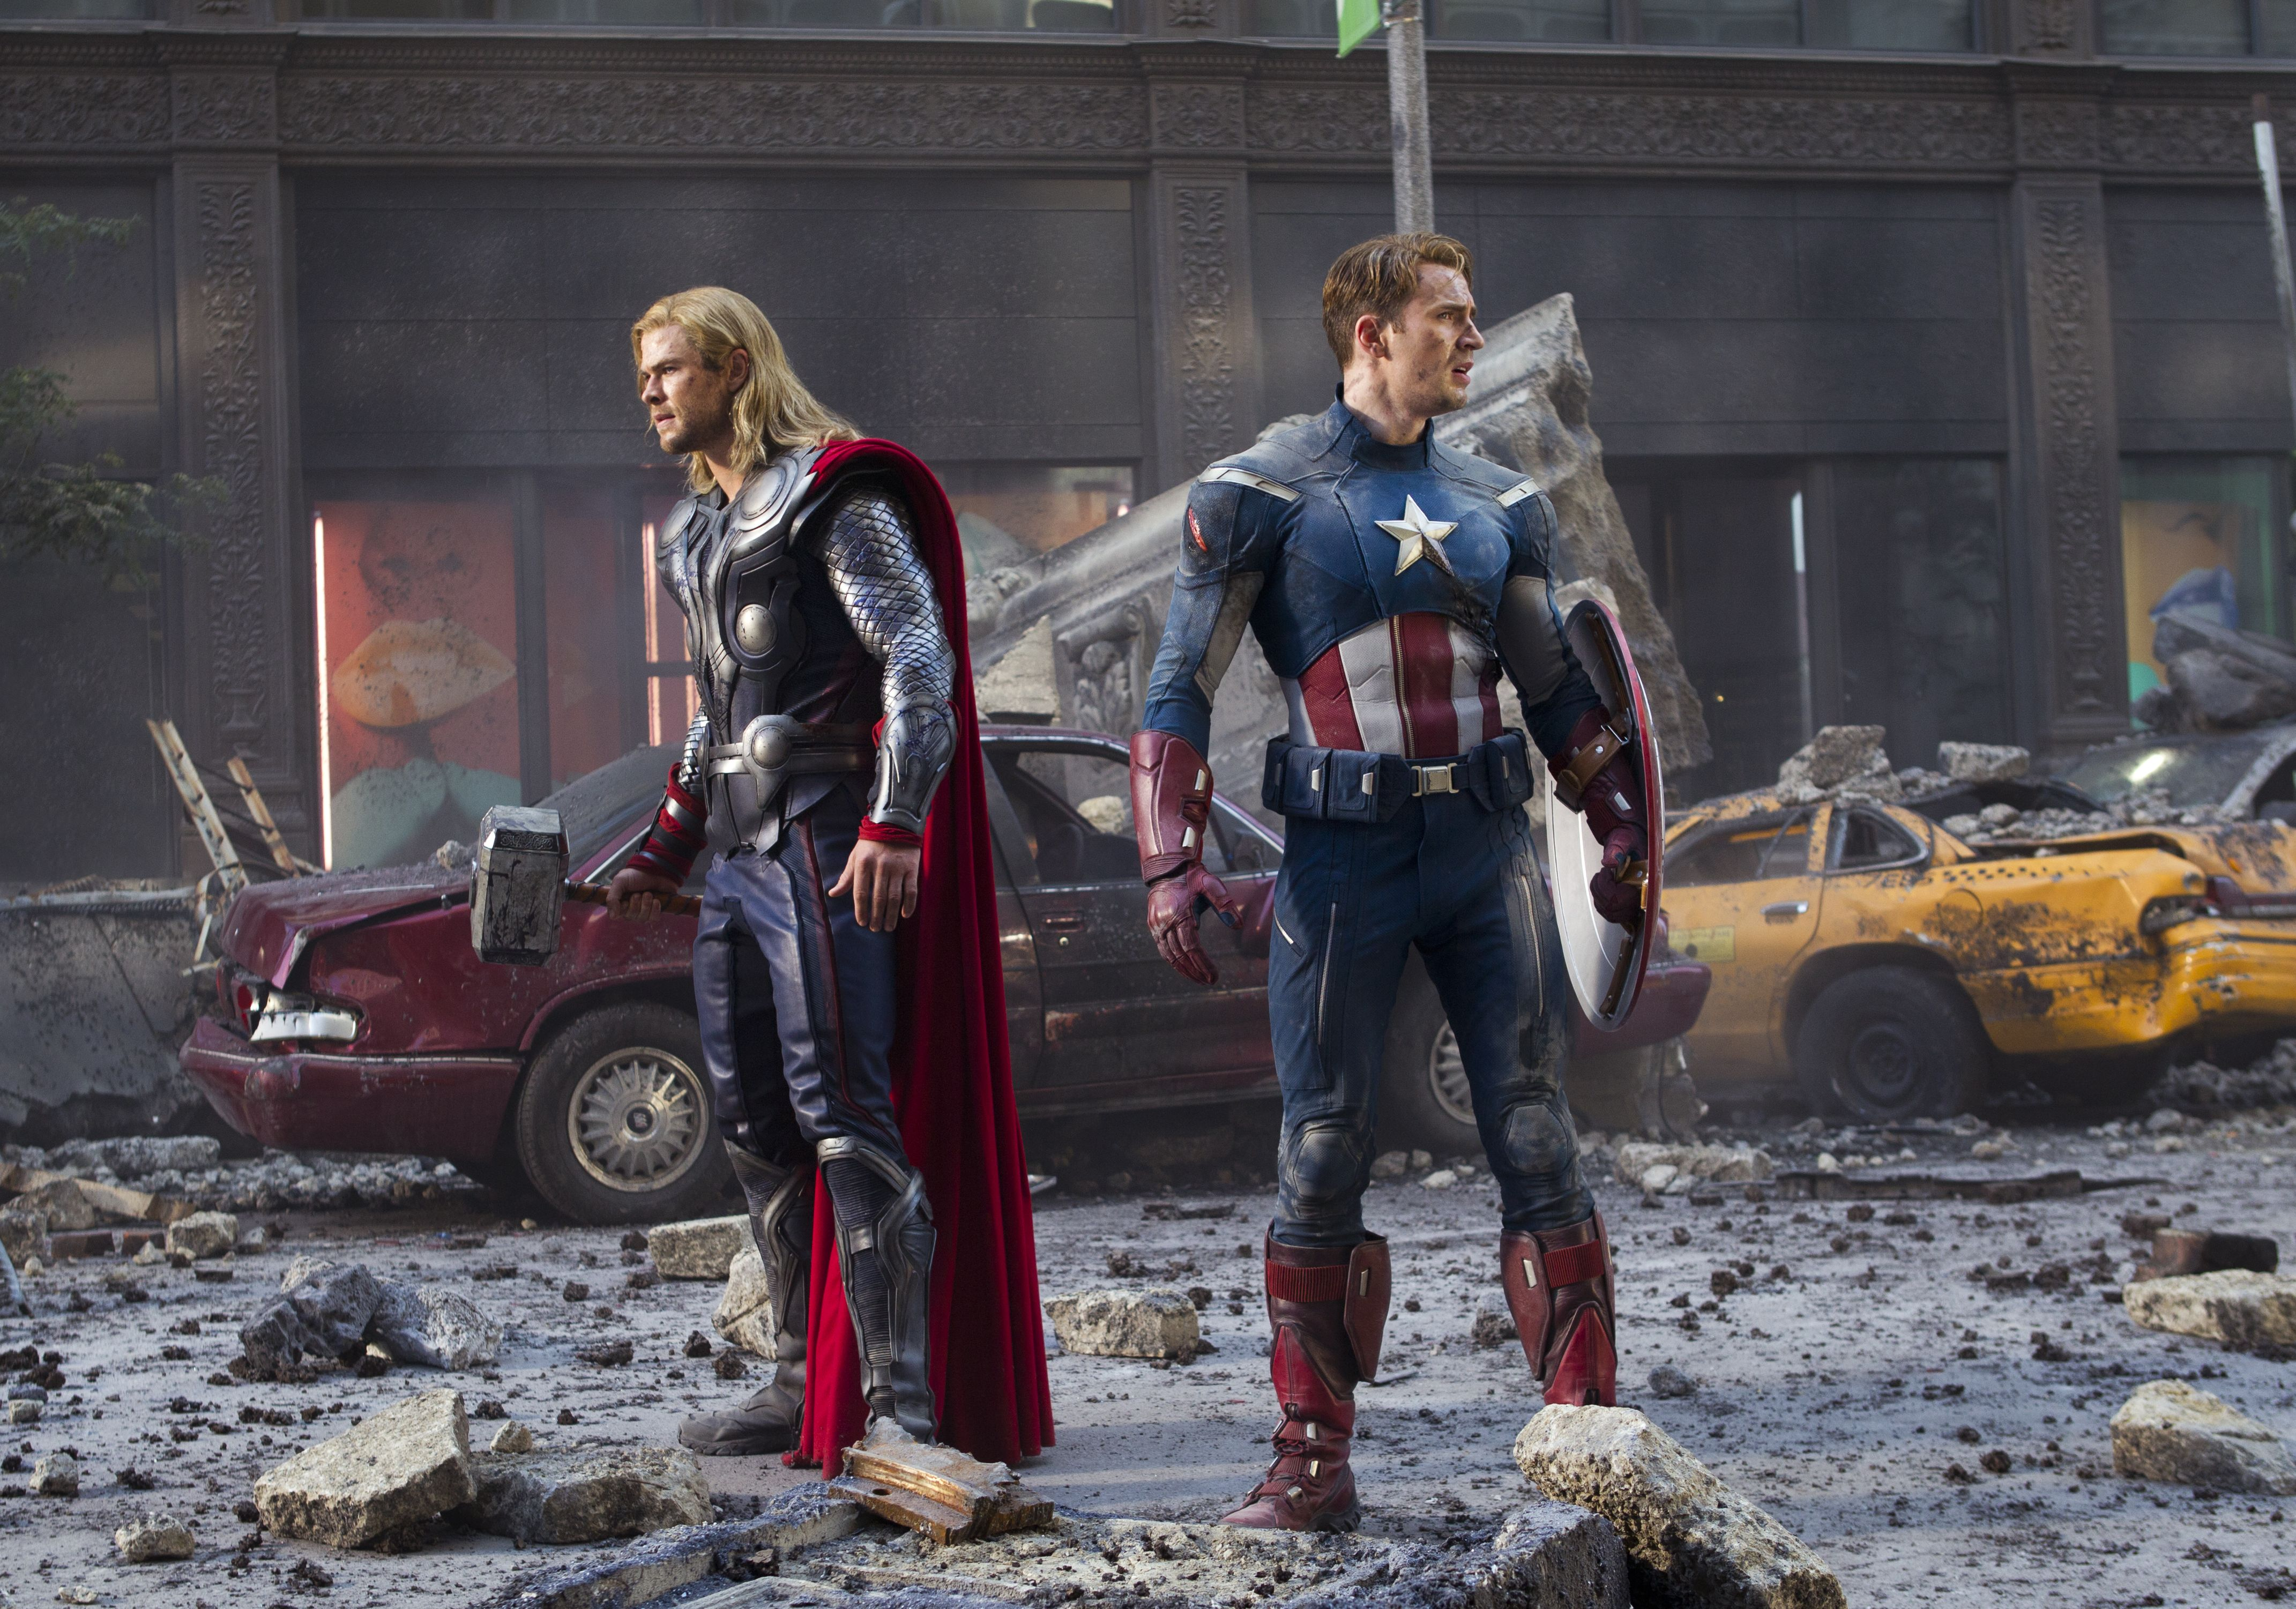 Thor and Captain America on destroyed street, The Avengers